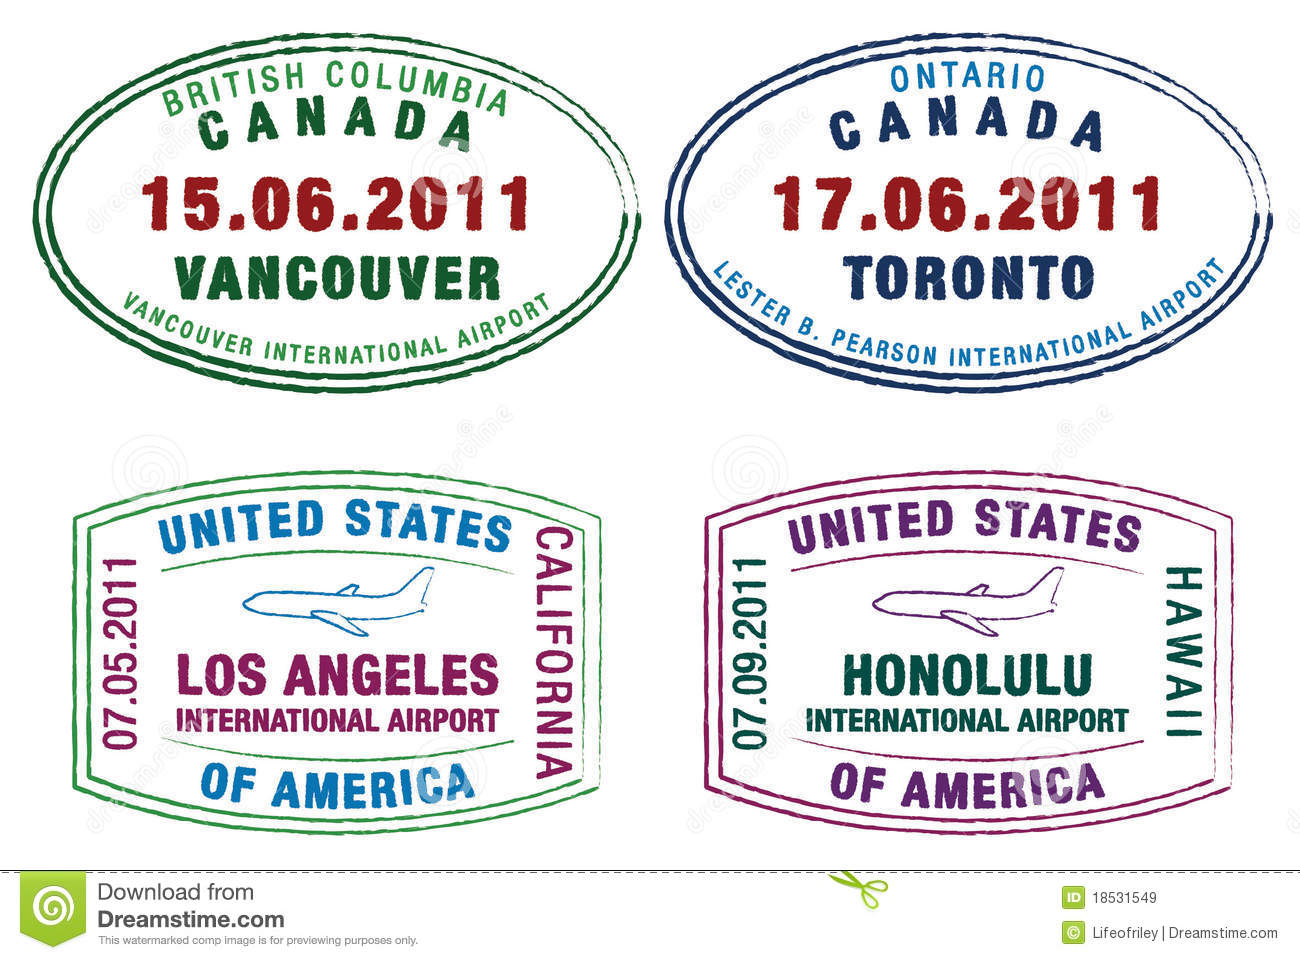 Passport Stamps Of The US And Canada In Format